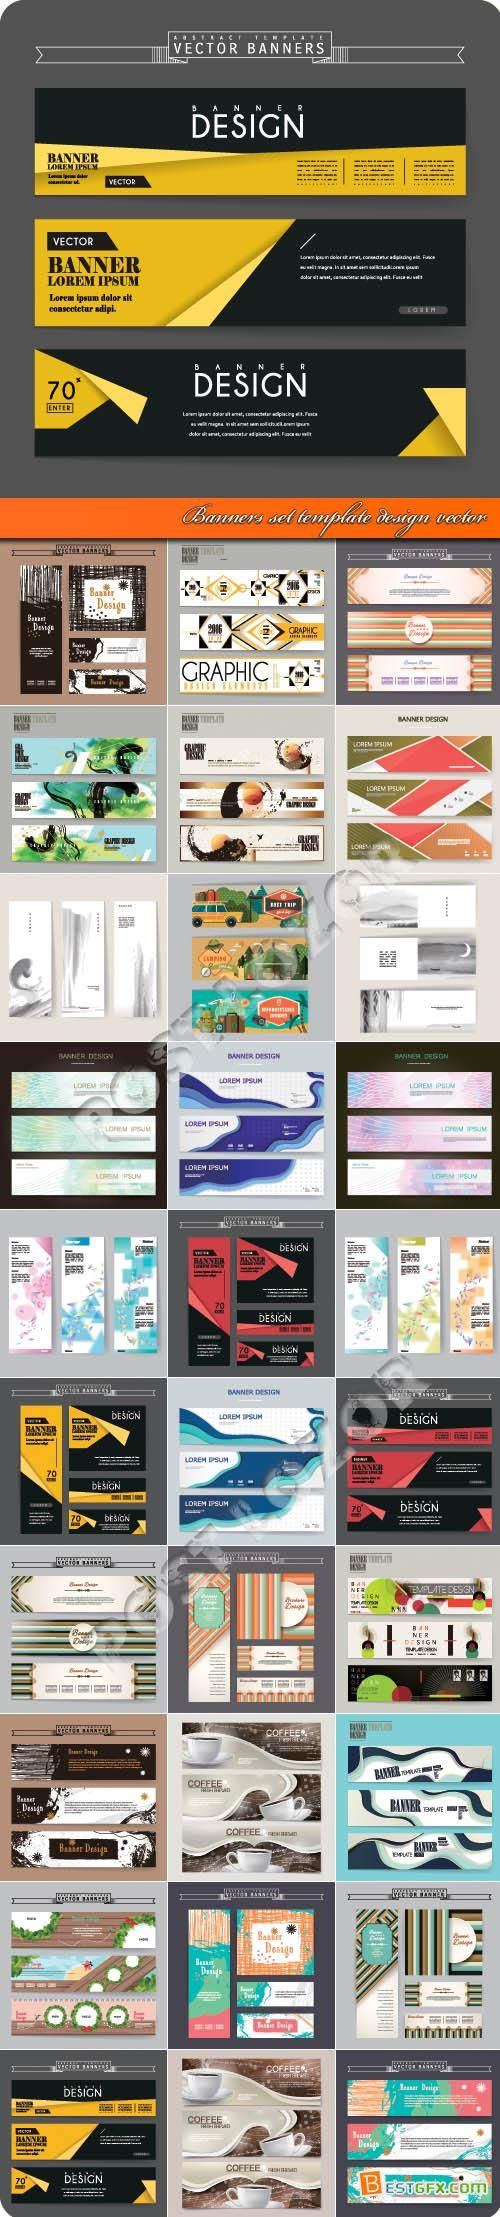 Banners set template design vector                                                                                                                                                                                 More